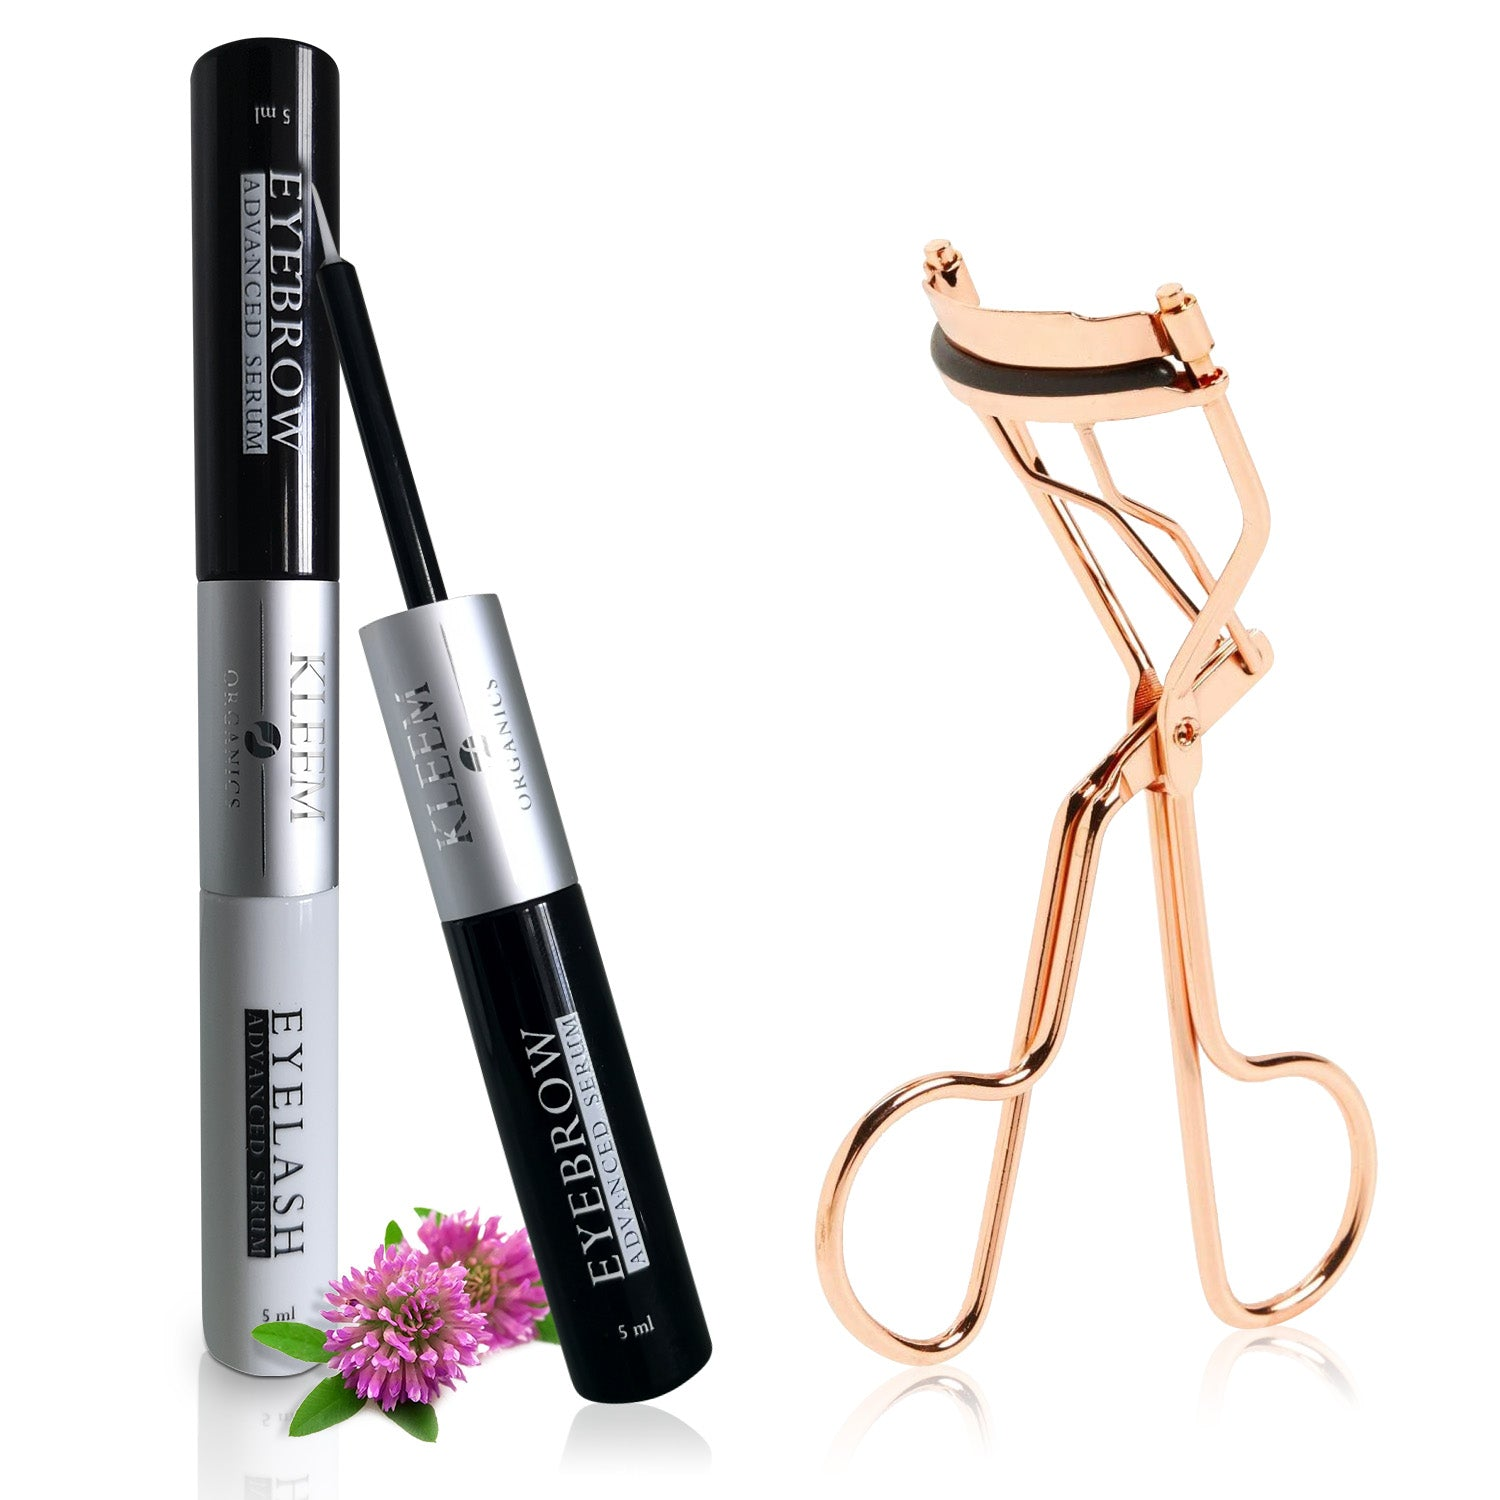 1 Eyelash Growth Serum + 1 Eyelash Curler Bundle